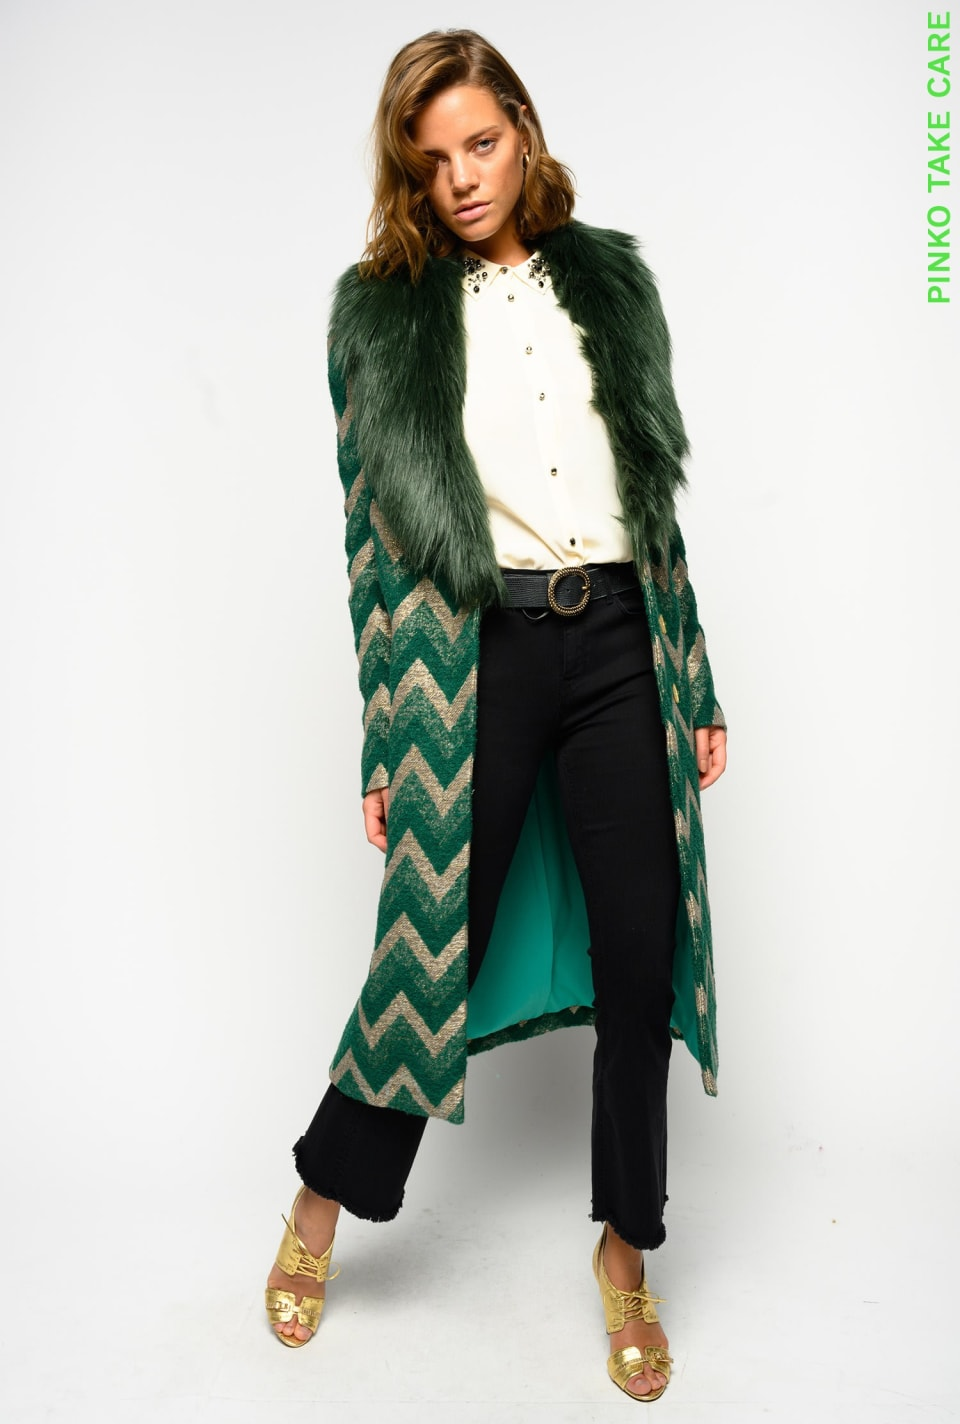 Chevron jacquard coat